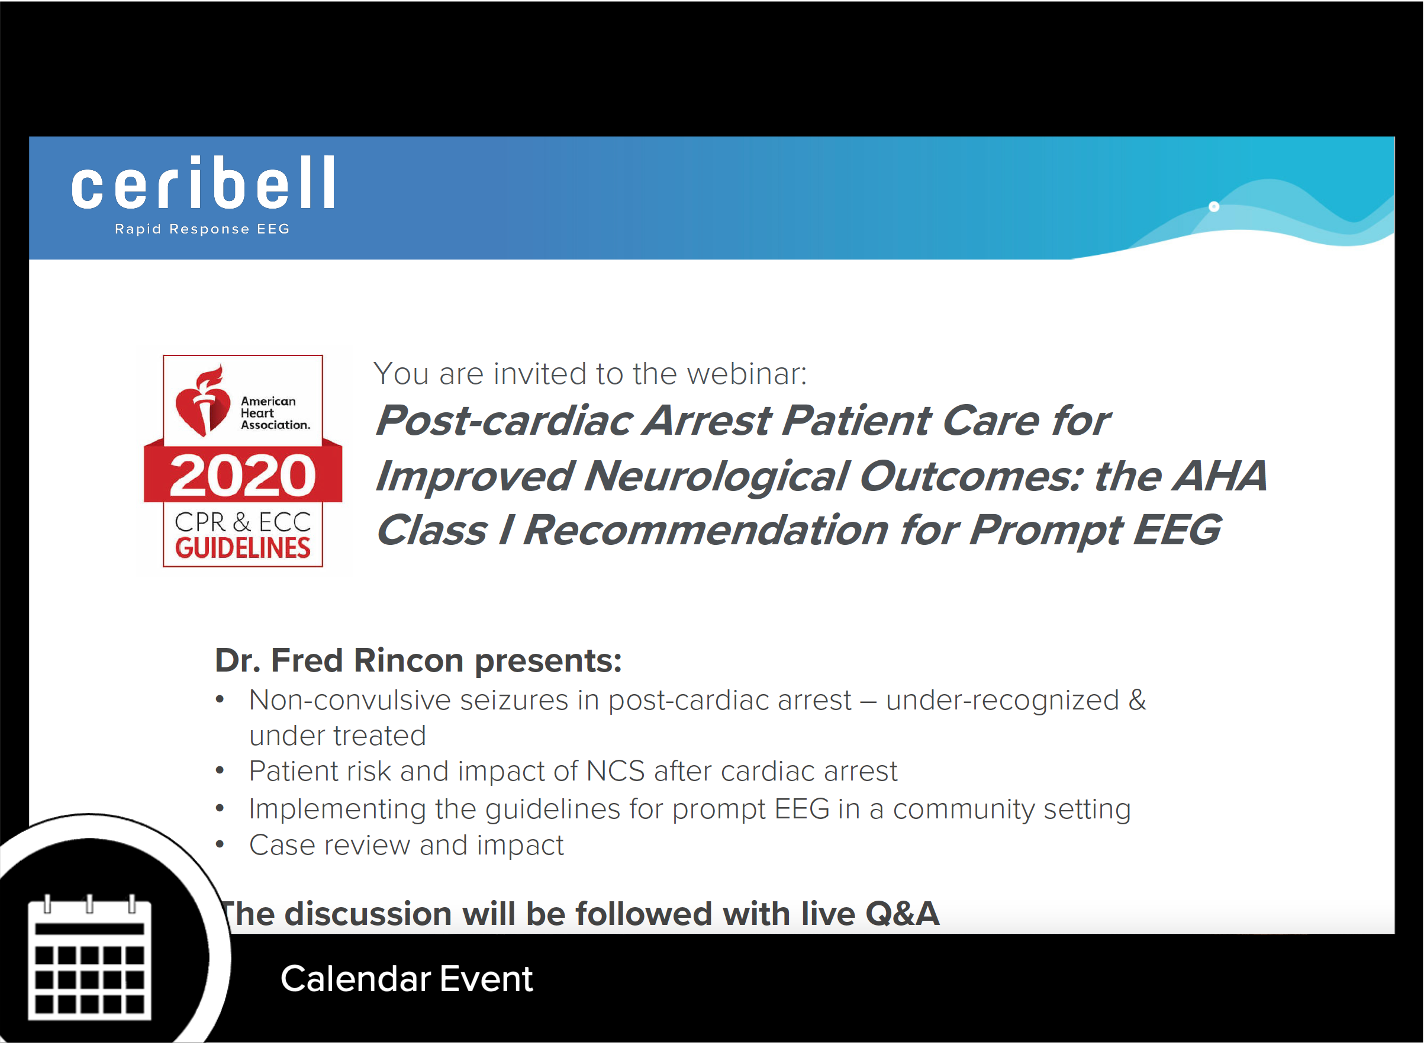 Post-cardiac Arrest Patient Care for Improved Neurological Outcomes: the AHA Class I Recommendation for Prompt EEG